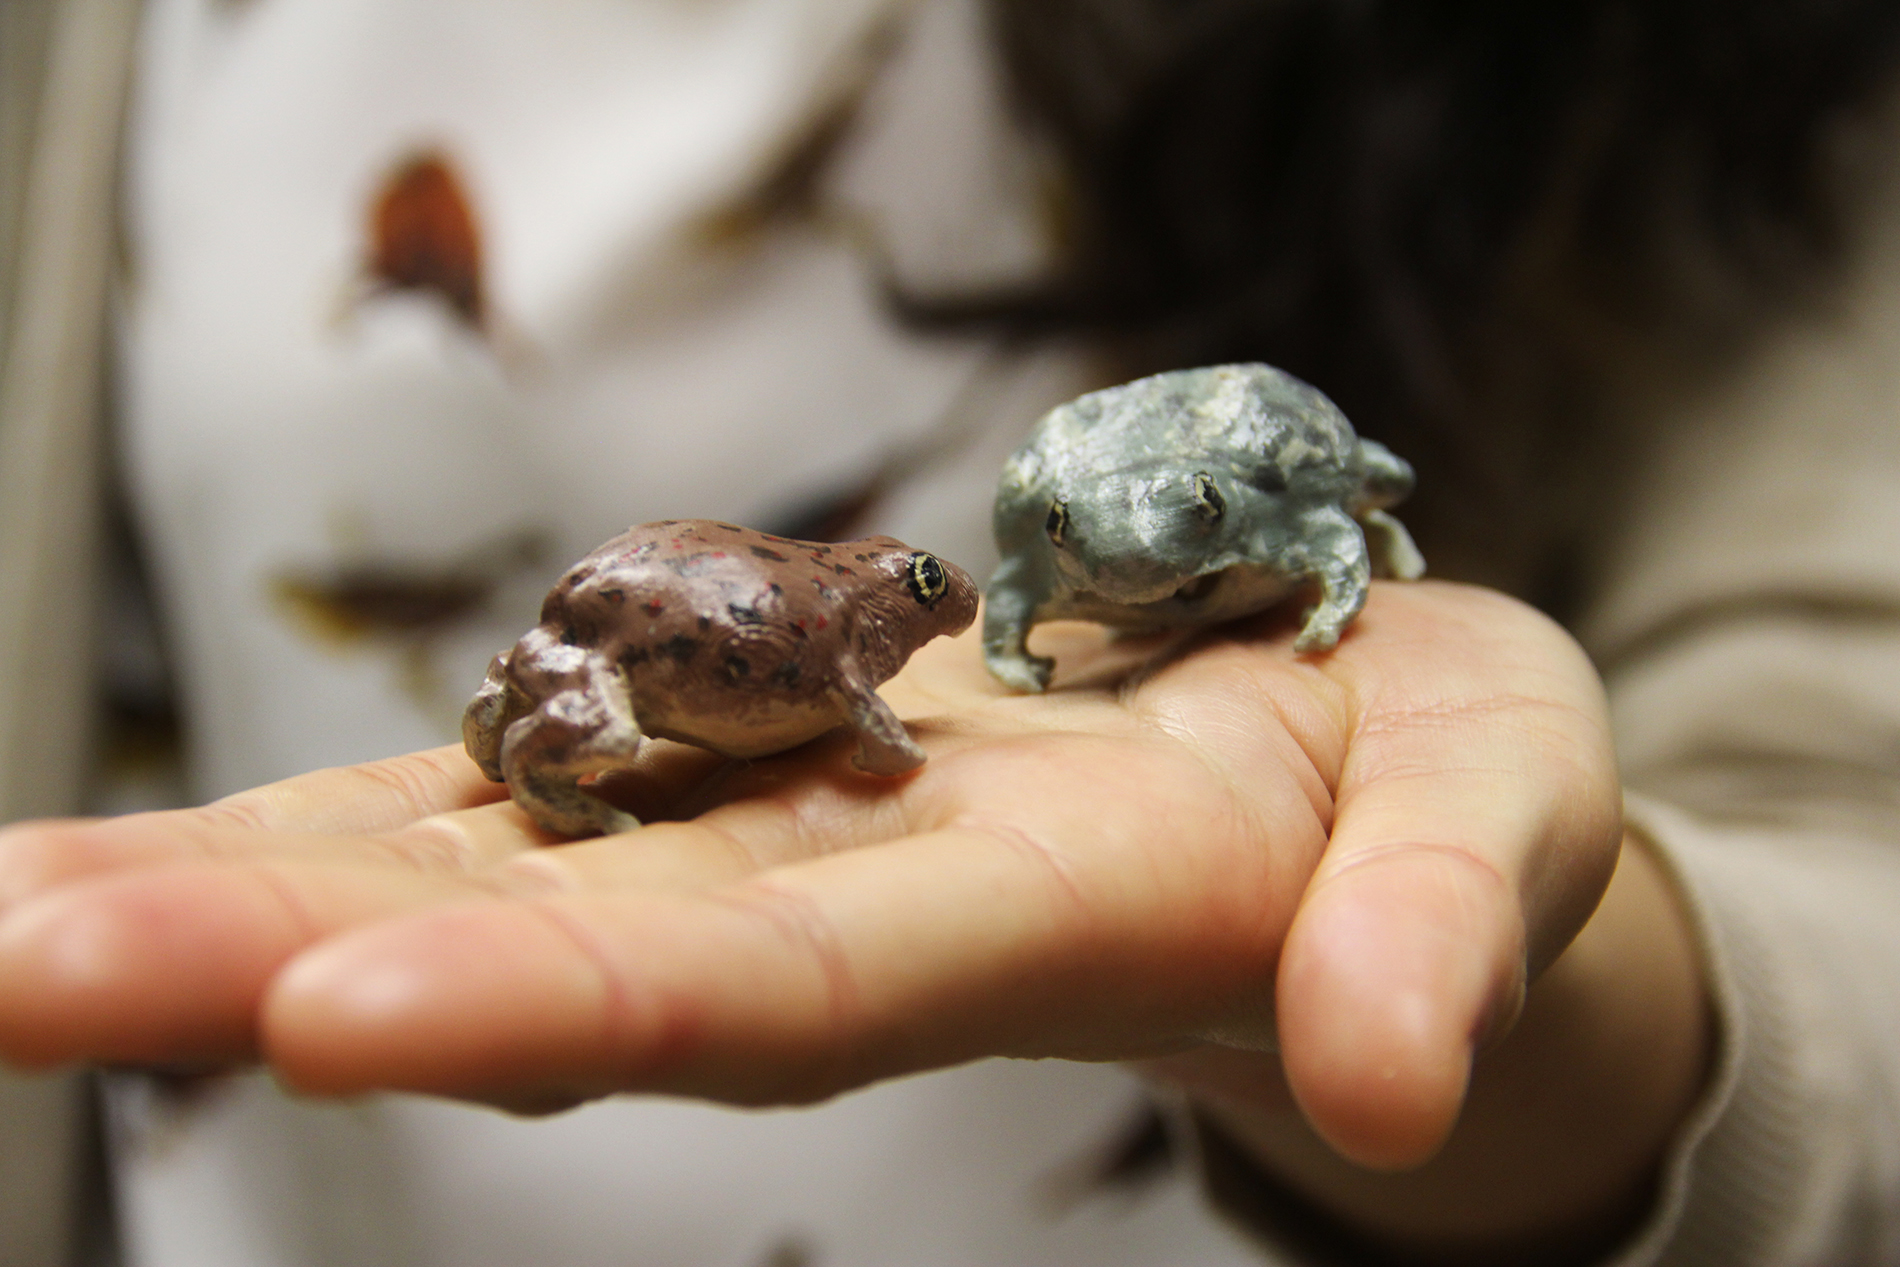 an up-close view of two 3-D printed spadefoot toads